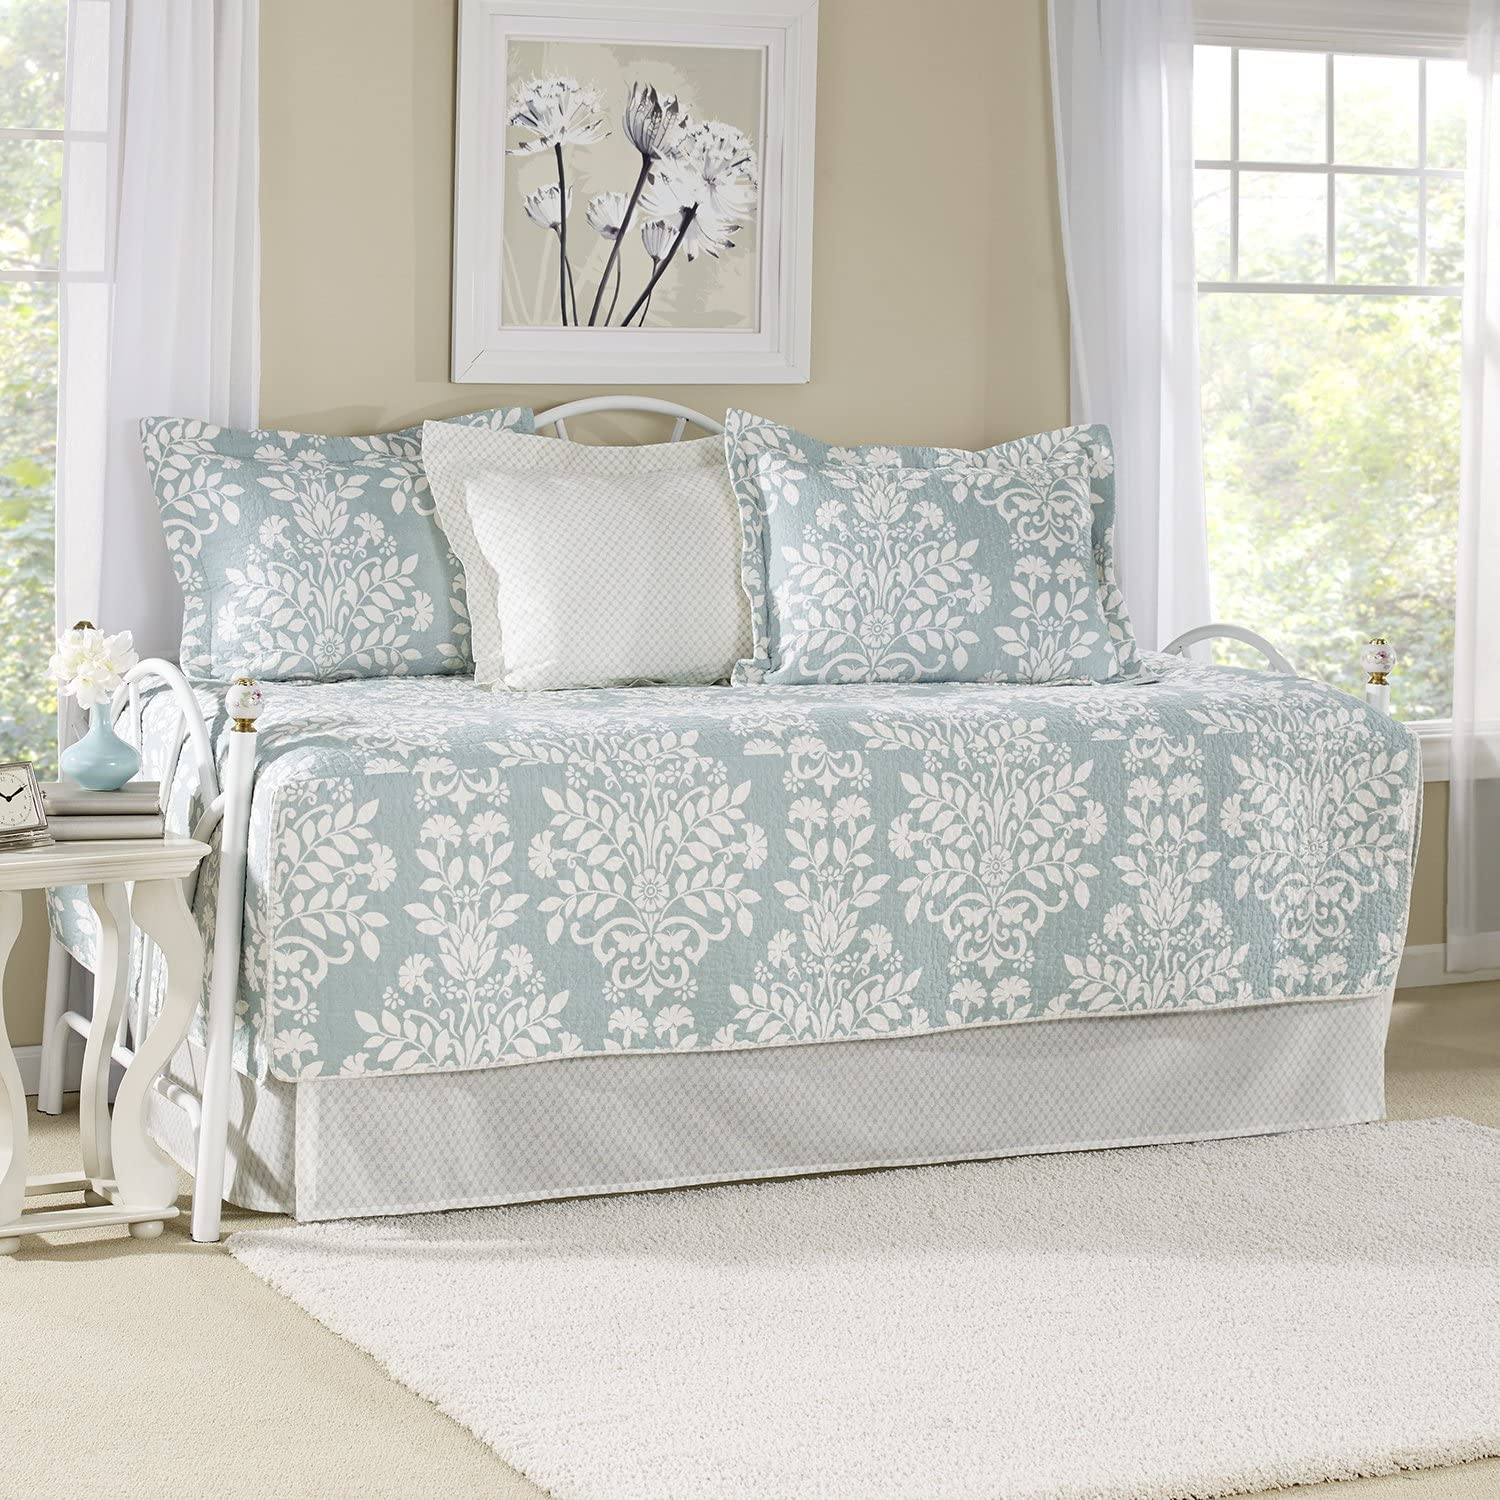 Laura Ashley | Rowland Collection | Premium Quality Ultra Soft Daybed Coverlet, Lightweight Comfortable Bedding Set, Stylish Design for Home Décor, Twin, Breeze Blue